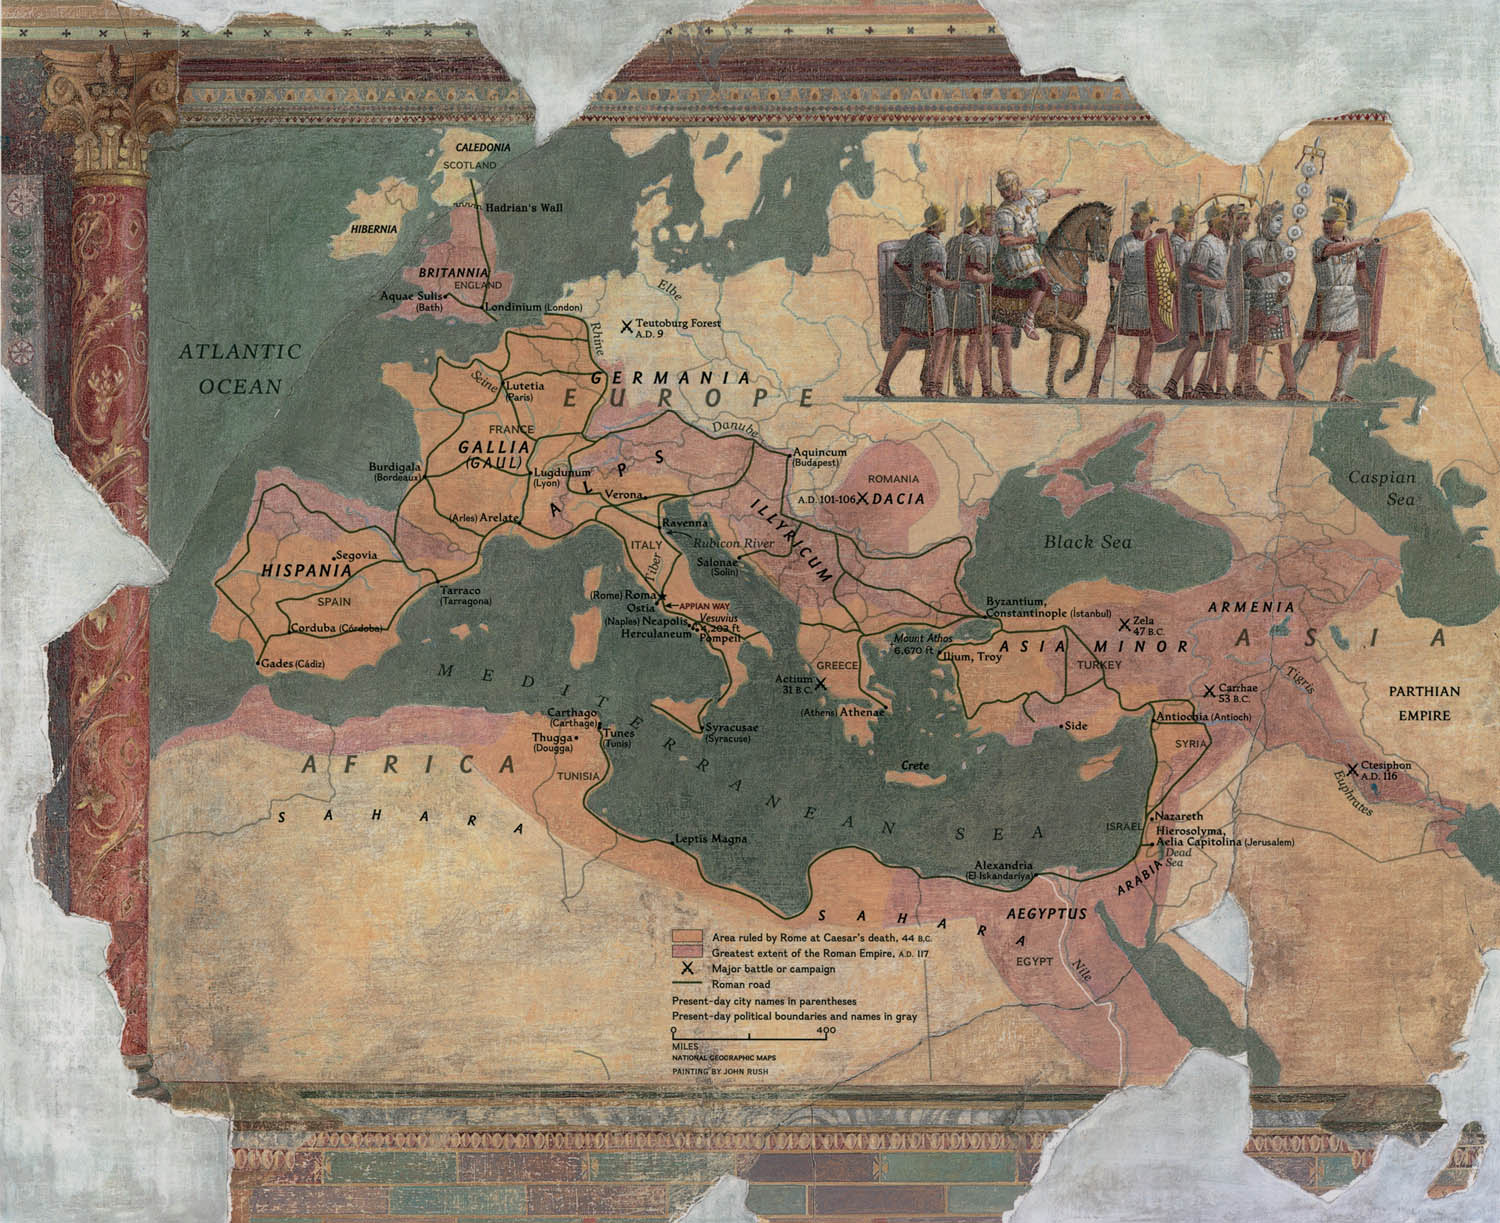 Immigrants to the Eternal City | Nat Geo Education Blog on ancient greece, ancient monroe map, anciet rome map, ancient goshen map, roman empire, ancient syracuse map, latin language, roman architecture, ancient rome clothing, ancient history, roman road, rome attractions map, roman forum, julius caesar, ancient peru map, byzantine empire, ancient hebron map, ancient mount etna map, roman legion, ancient egypt, ancient indian village map, roman empire map, ancient roman city, middle ages, ancient oxford map,